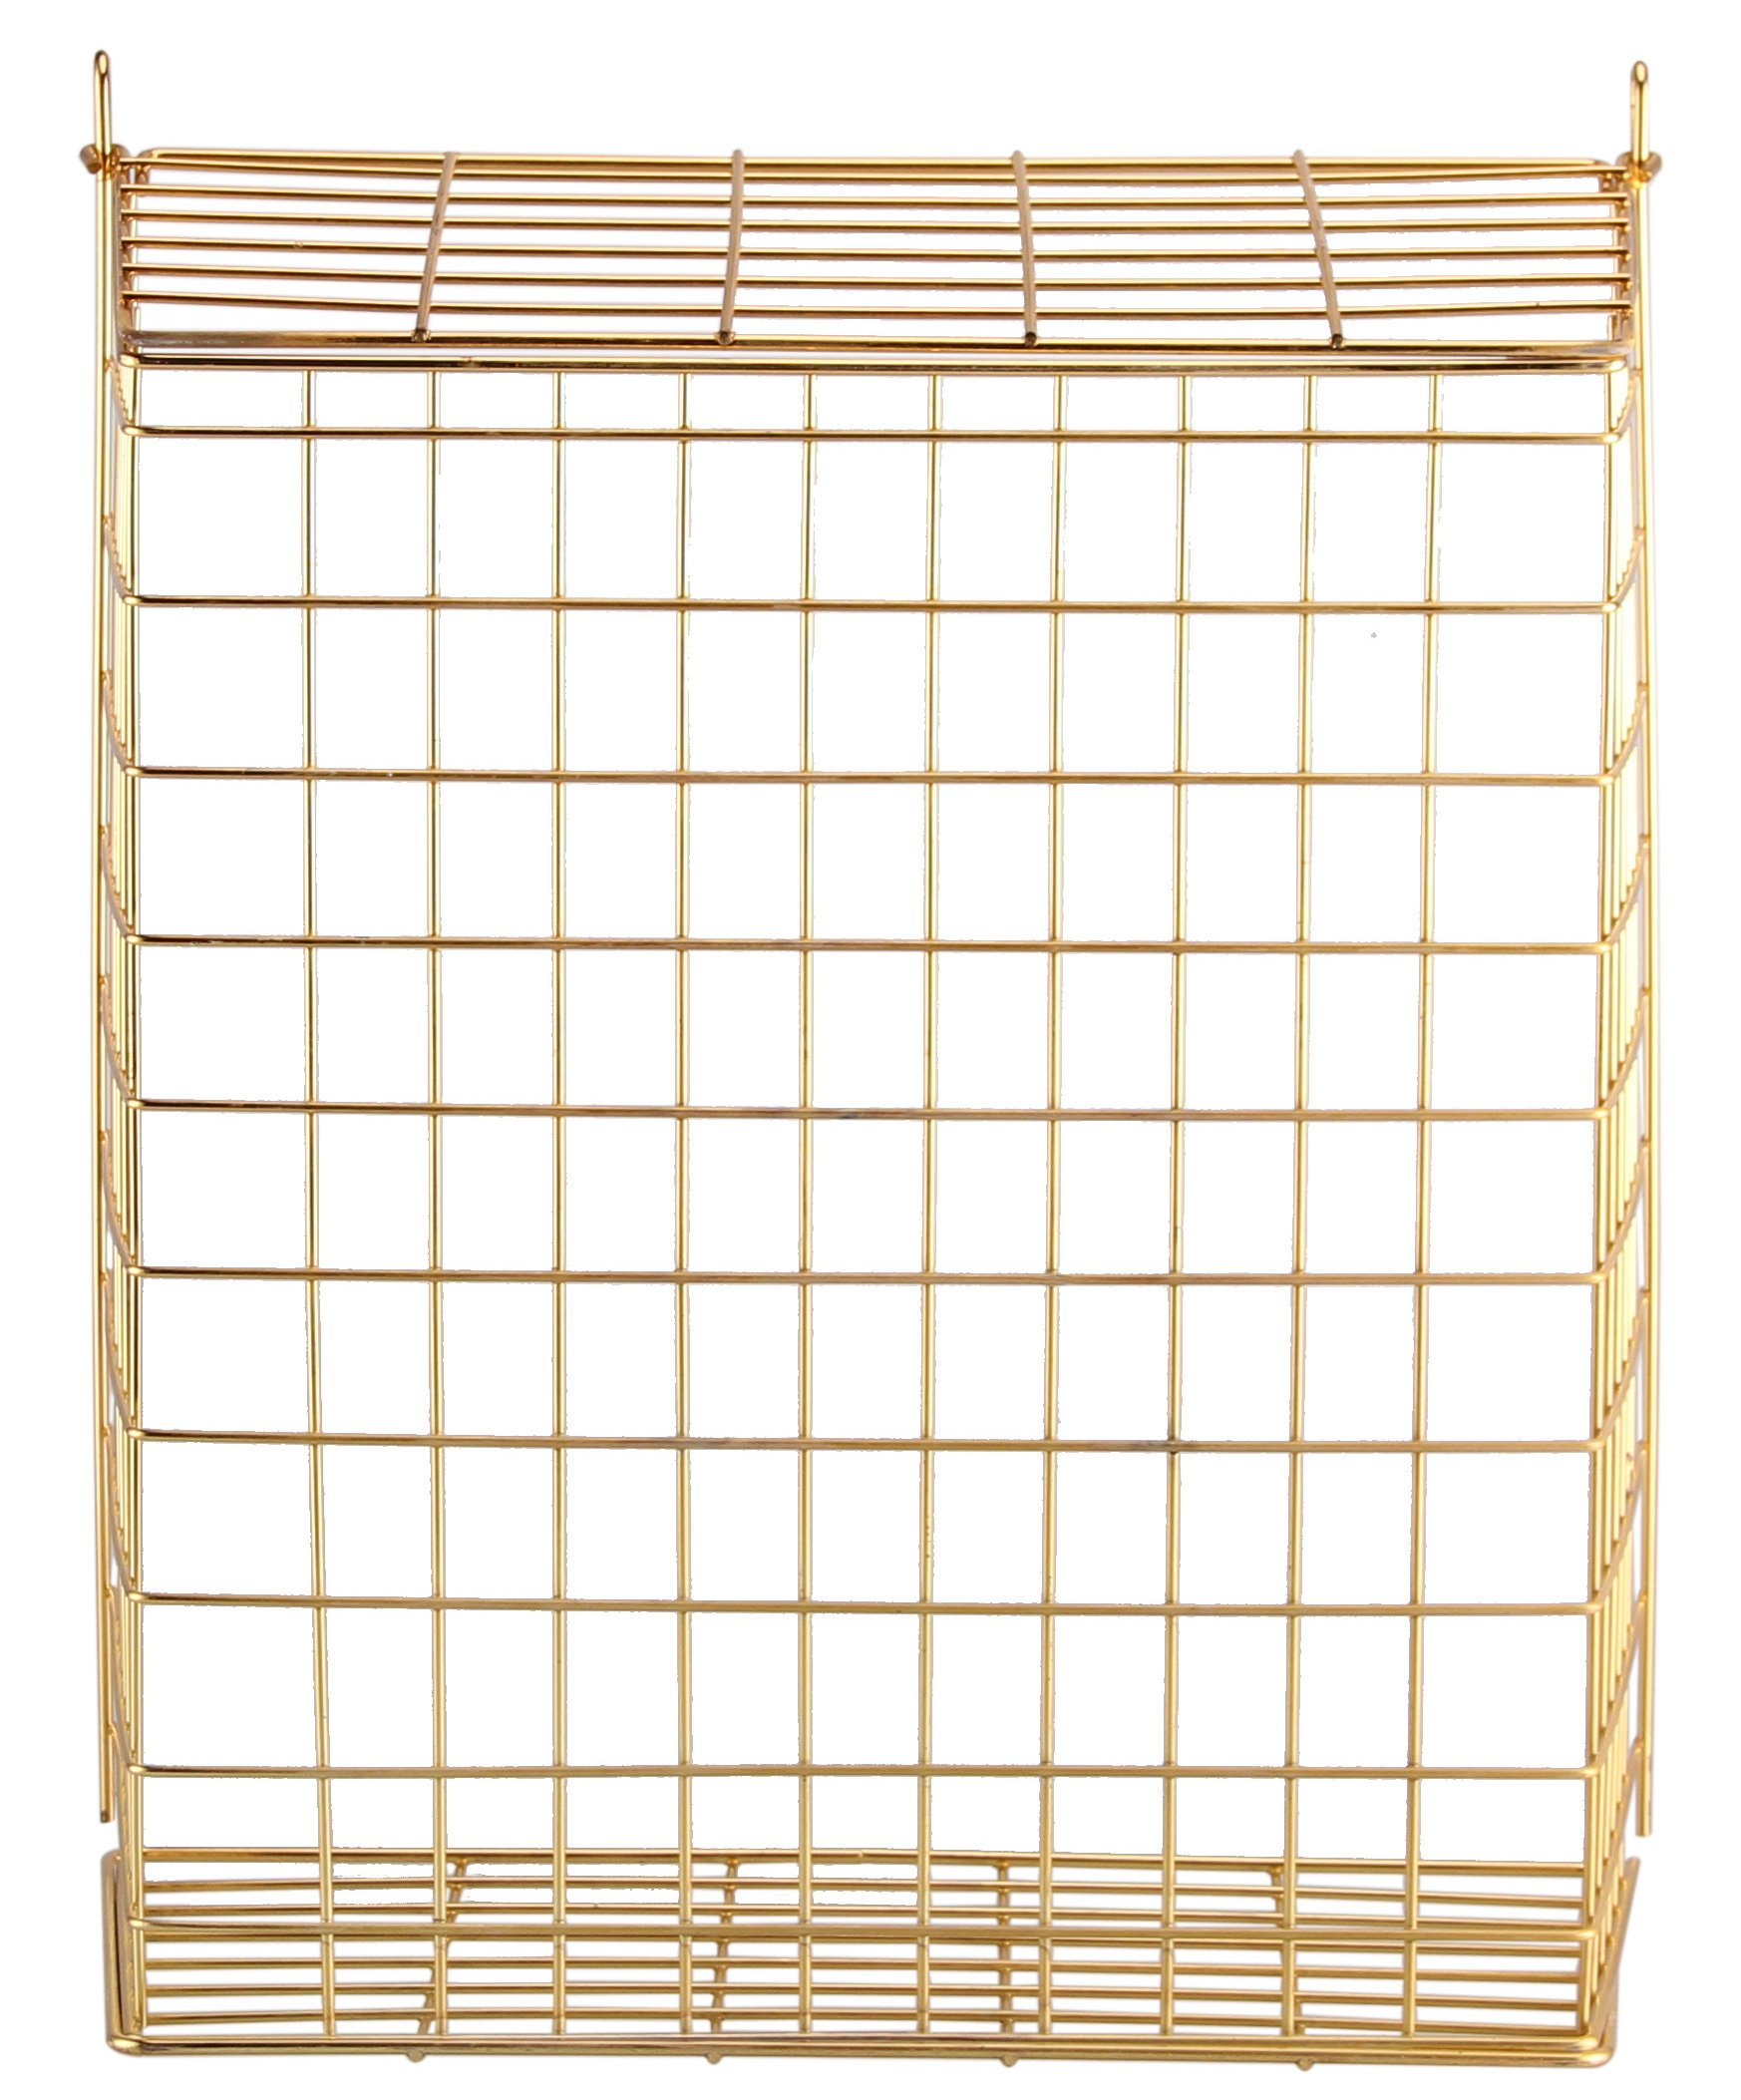 Buckingham 30053 Chrome Plated Pre-Assembled Front Door Letter Cage/Post Box, Brass